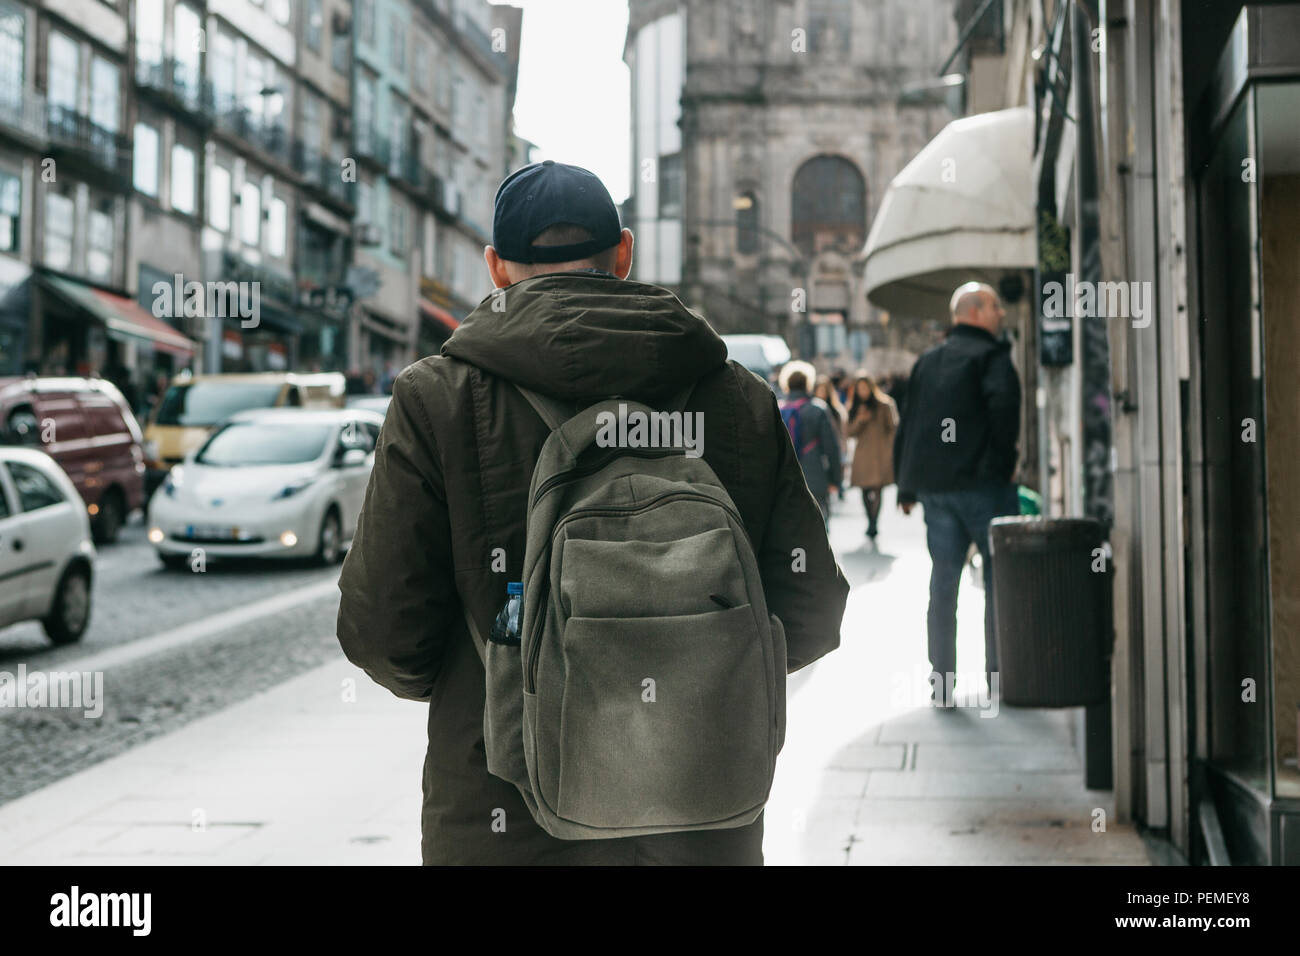 A tourist with a backpack walks down the street in Porto in Portugal. Travel around Portugal. - Stock Image